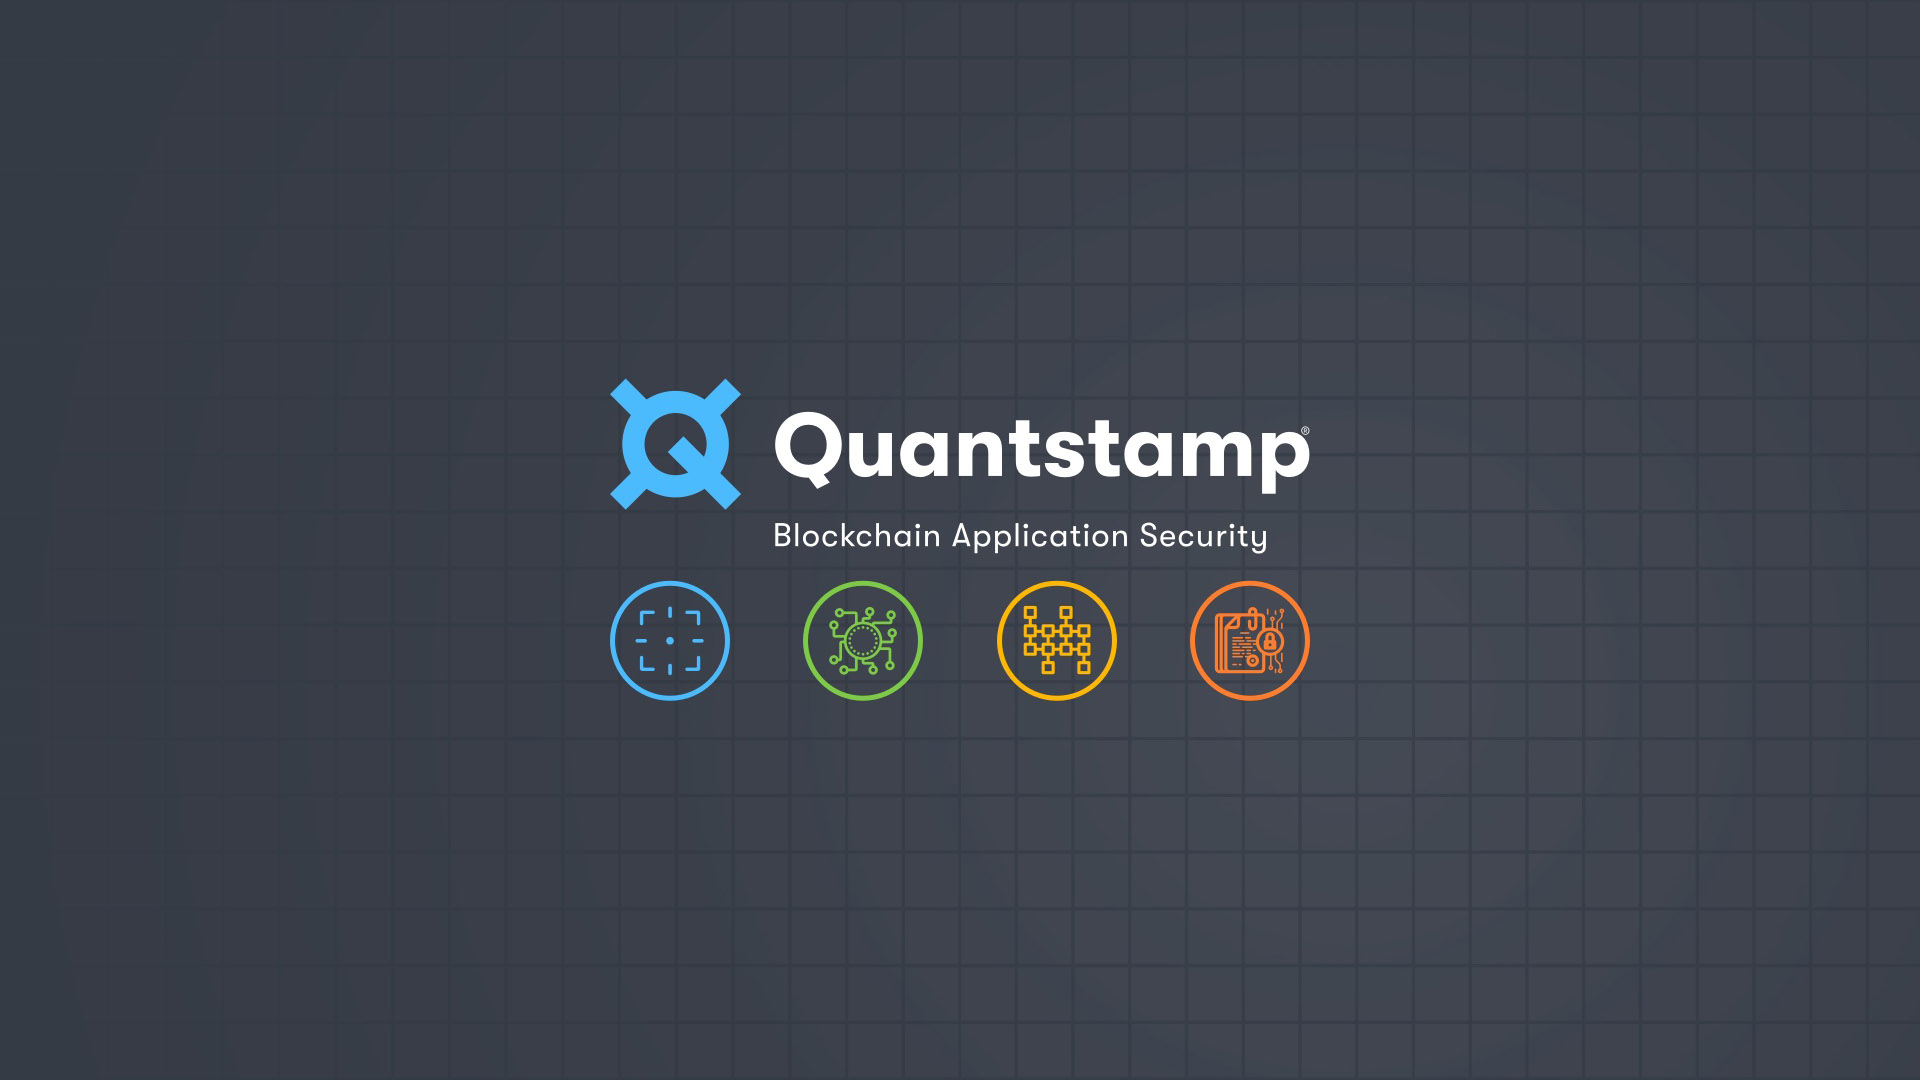 Quantstamp: Leader in security for decentralized and mission